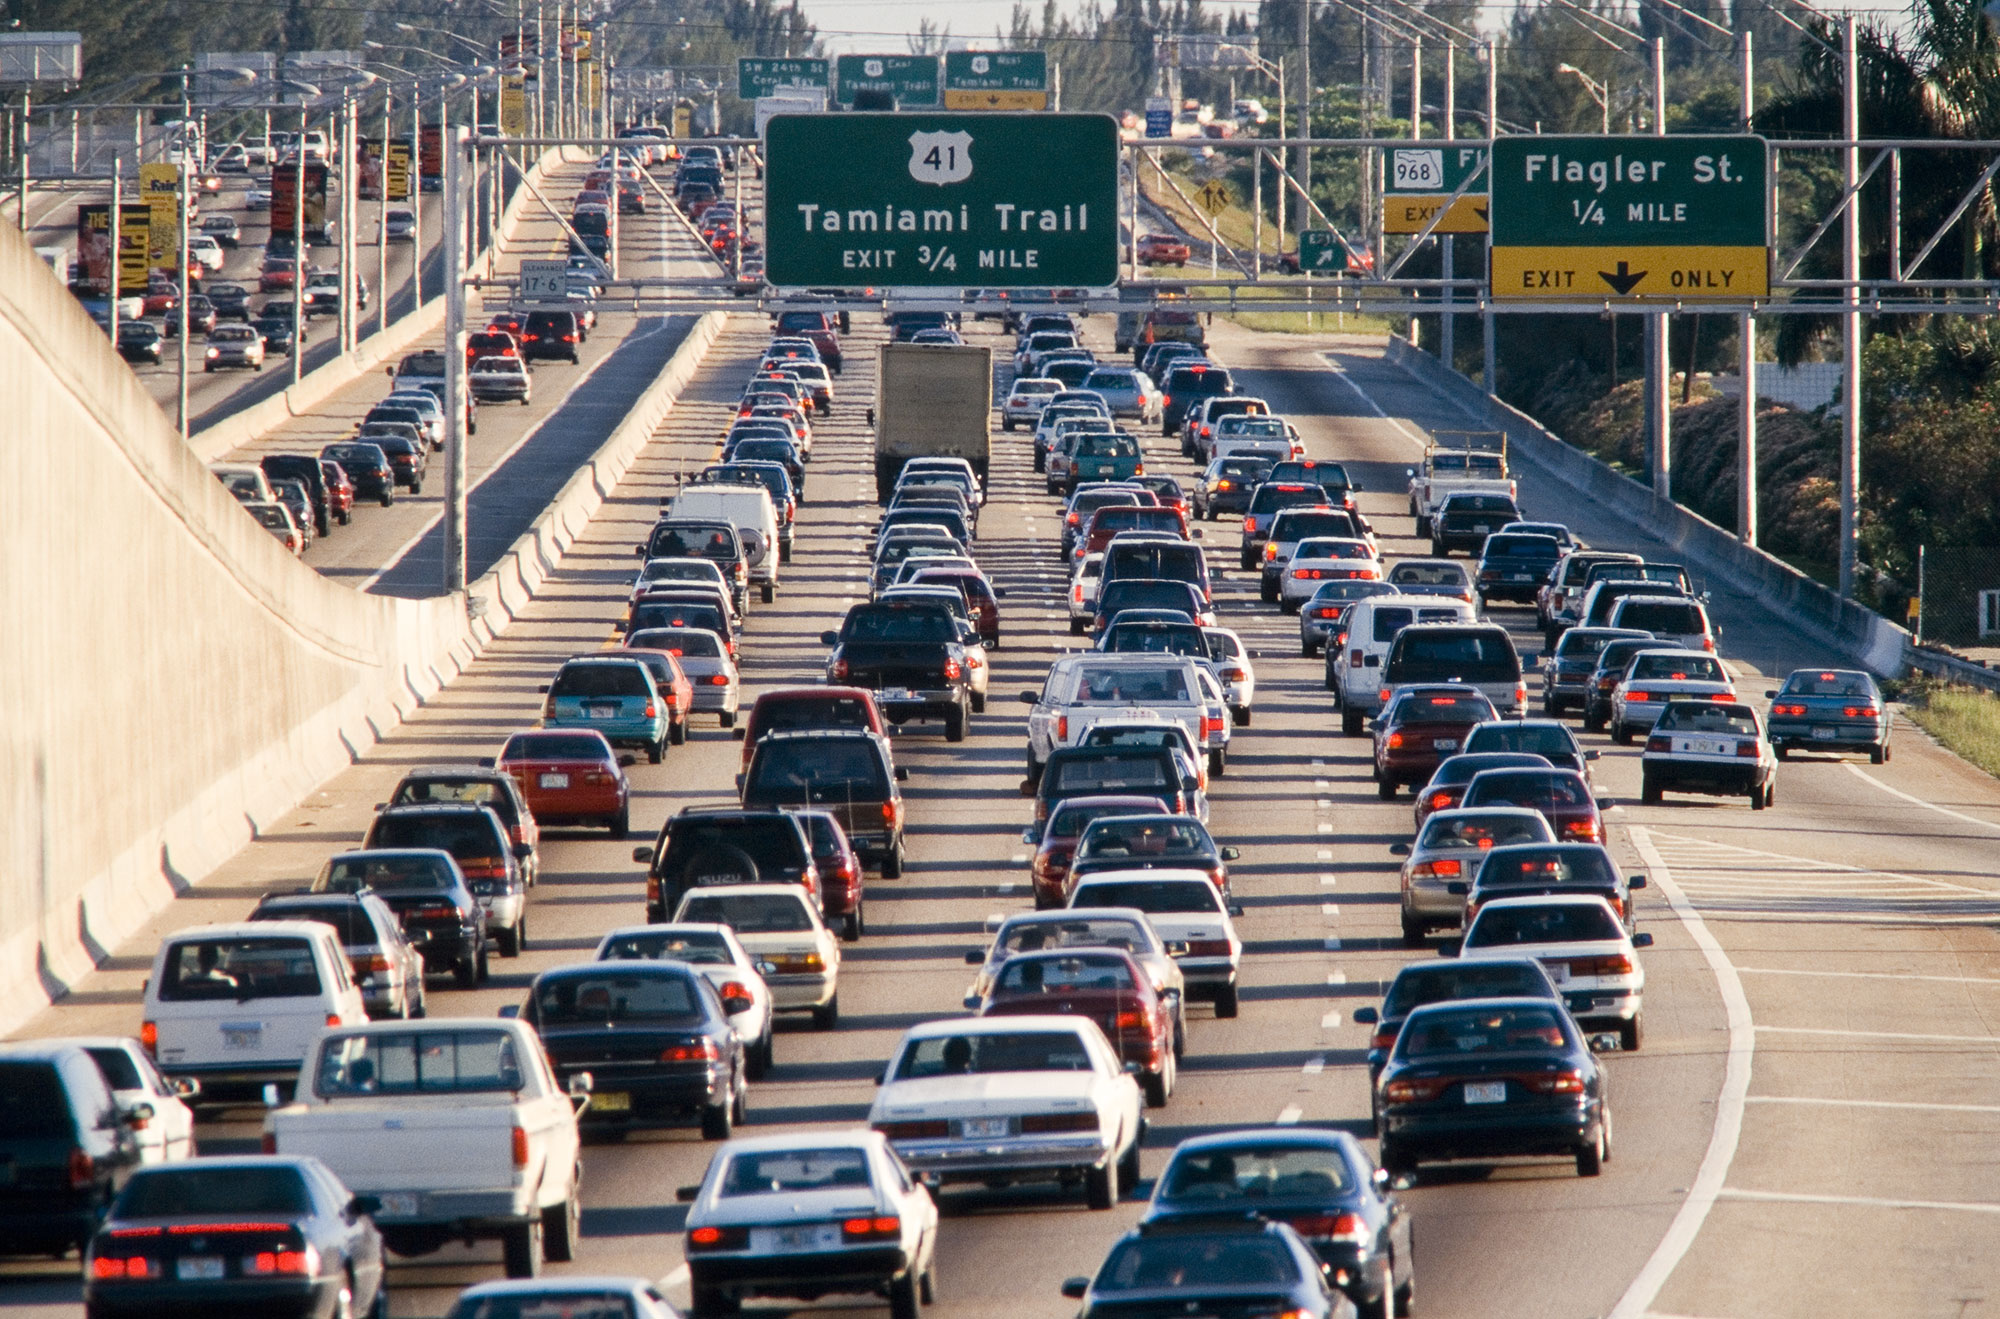 A fantastic, concise explanation of why traffic jams happen